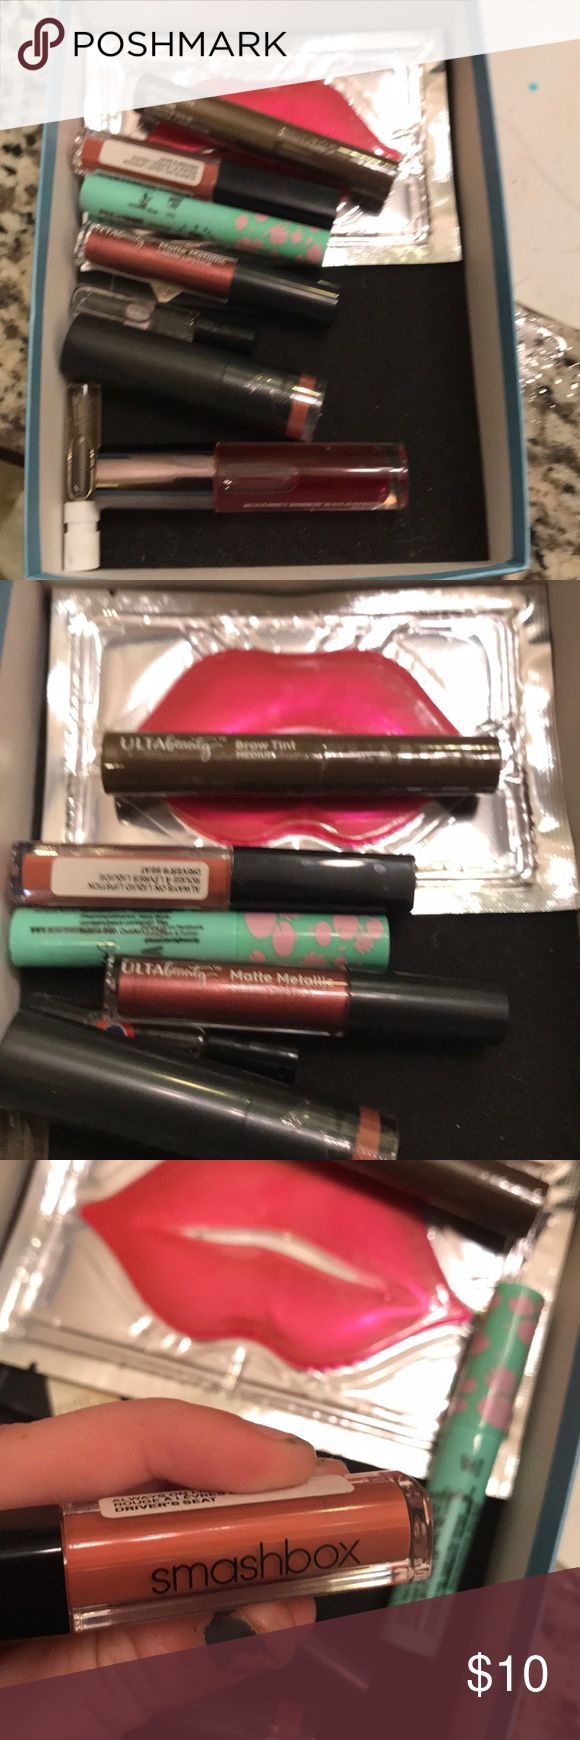 Makeup samples kit A combination of samples from ulta